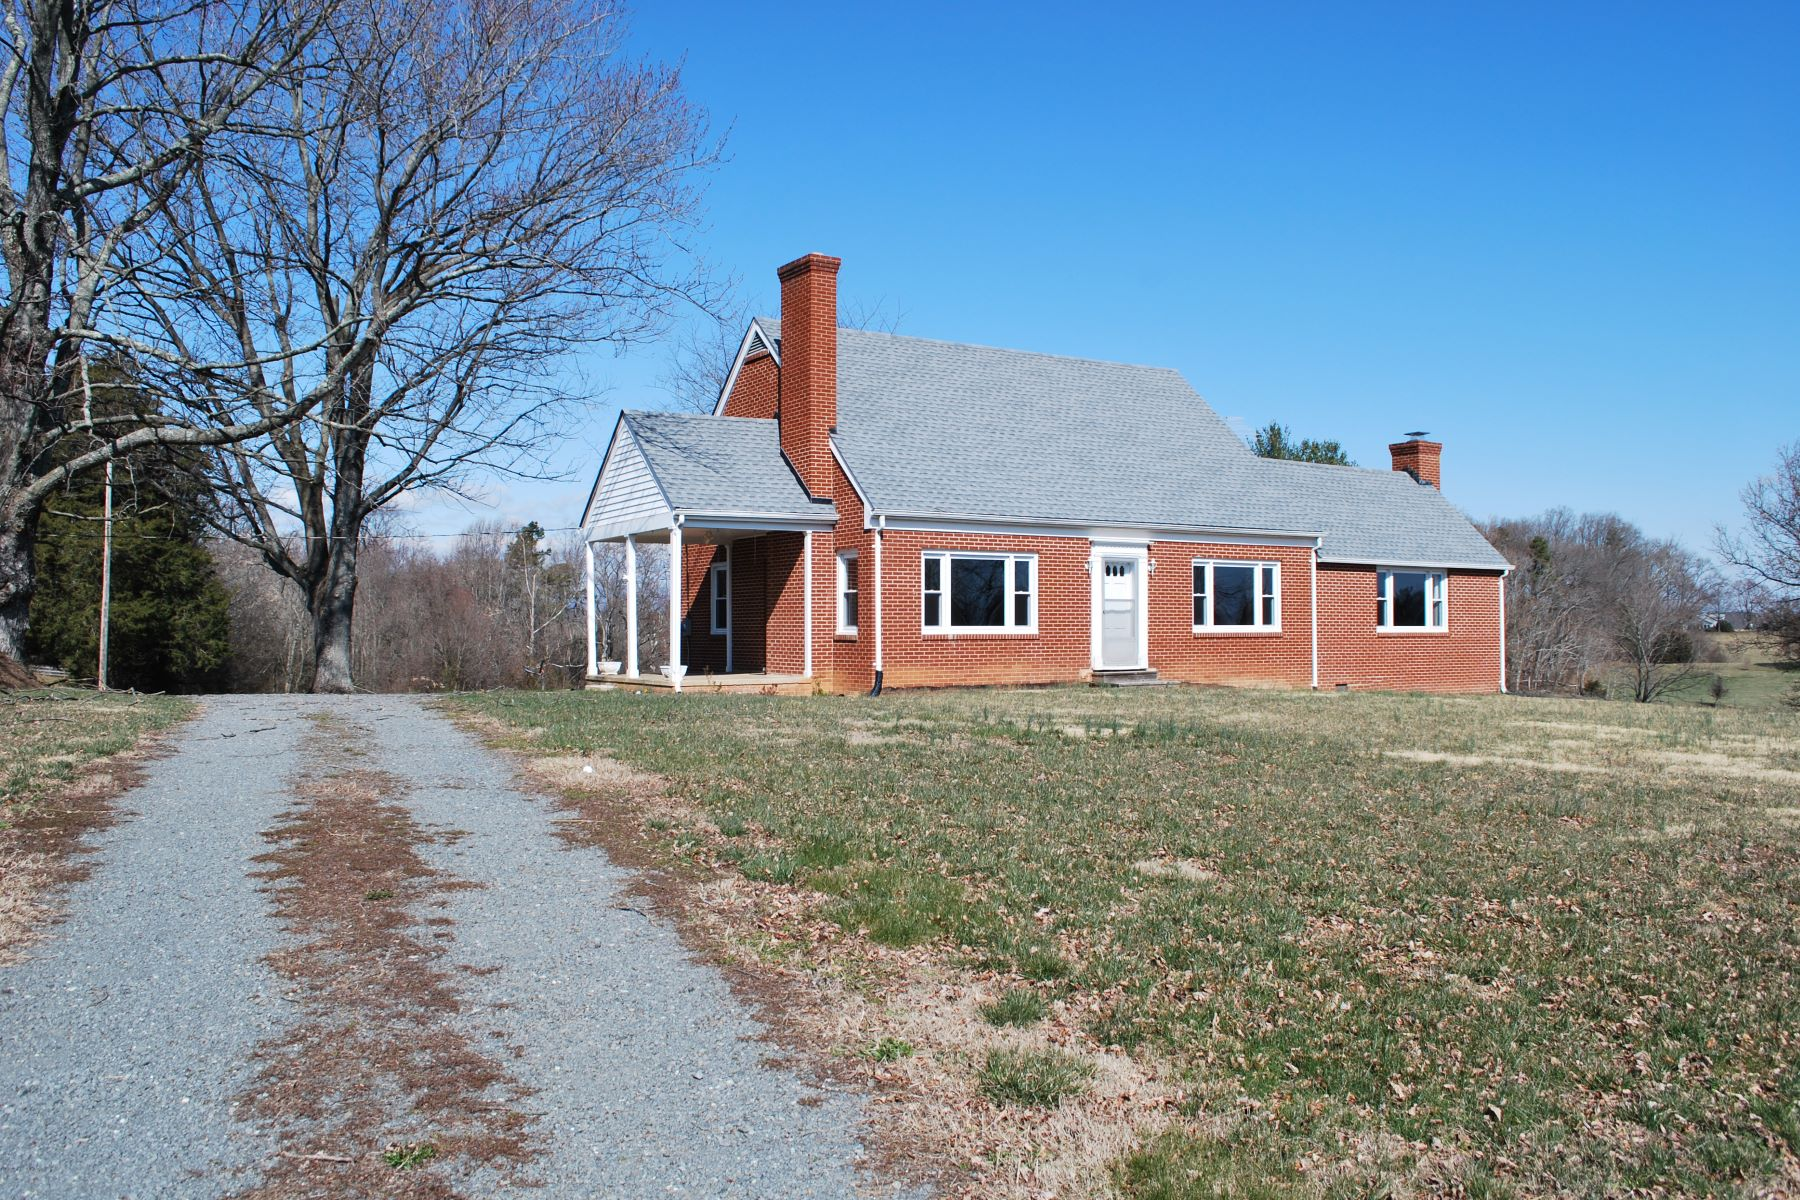 Single Family Home for Sale at 11513 Spicers Mill Rd. 11513 Spicers Mill Rd. Orange, Virginia 22960 United States